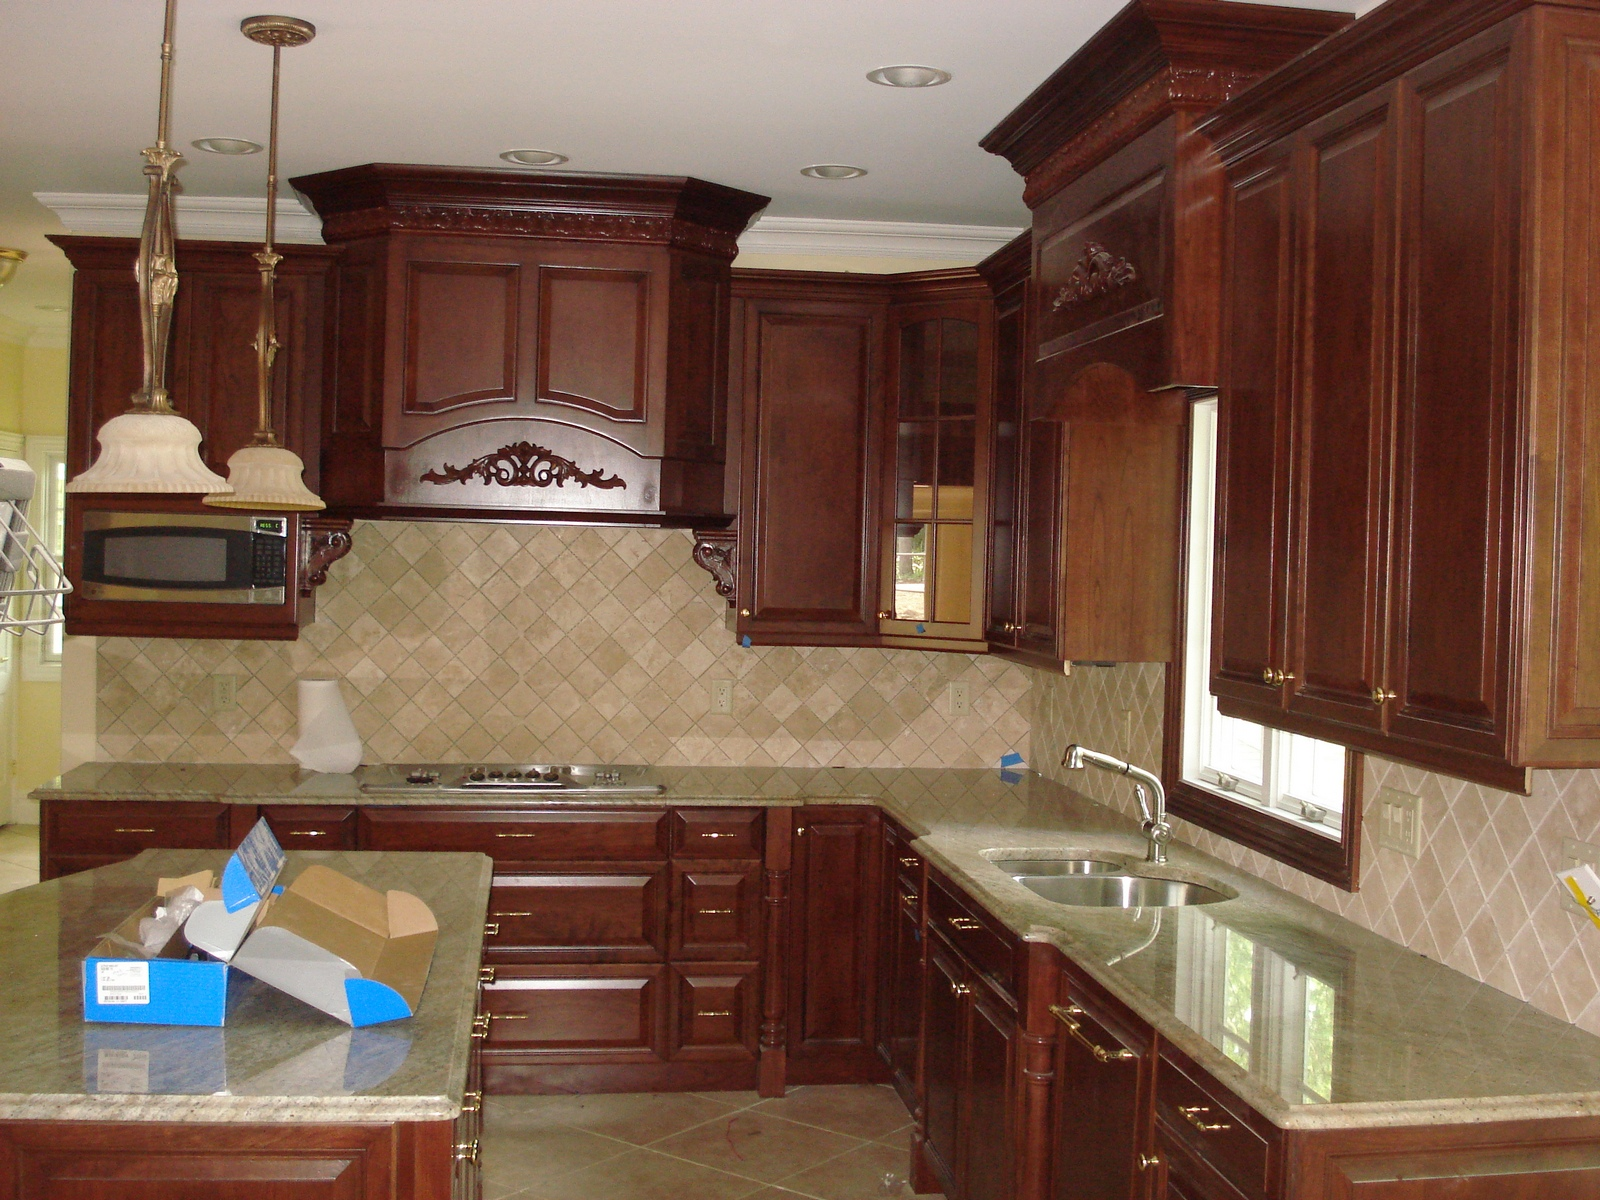 Kitchen cabinets kitchen cabinets by crown molding nj for White kitchen cabinets with crown molding